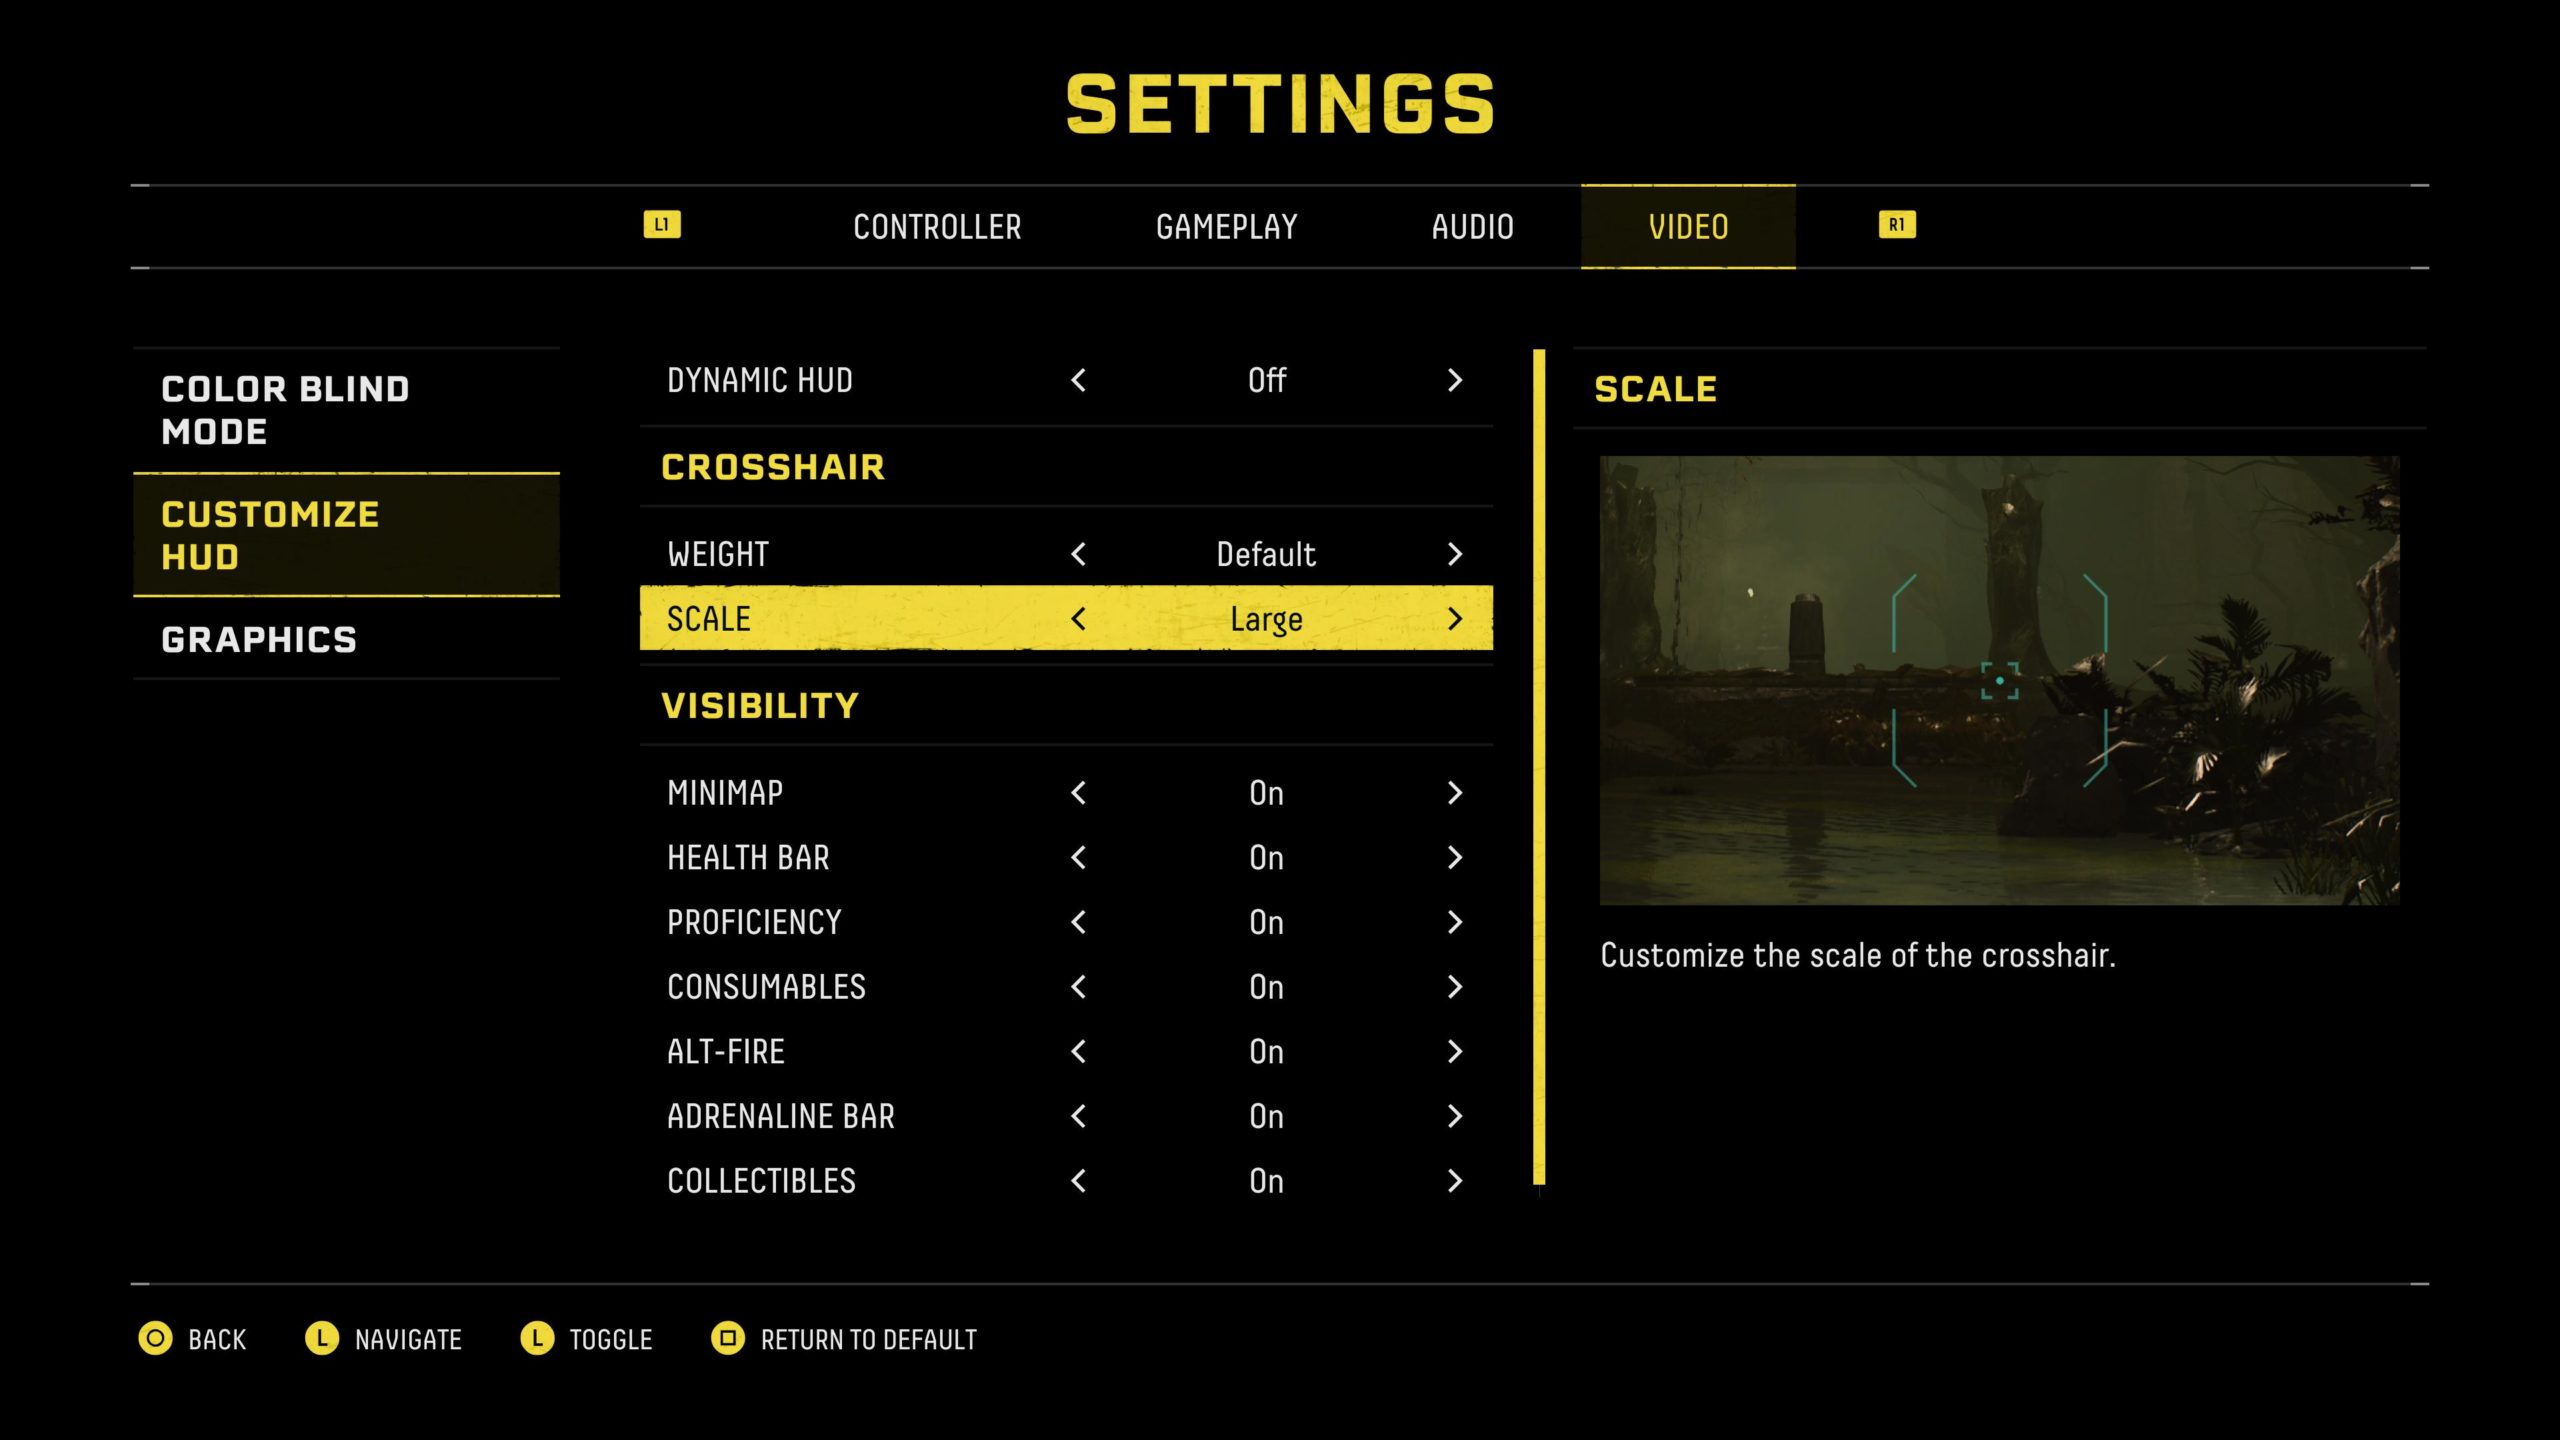 The crosshair at the default size and weight.